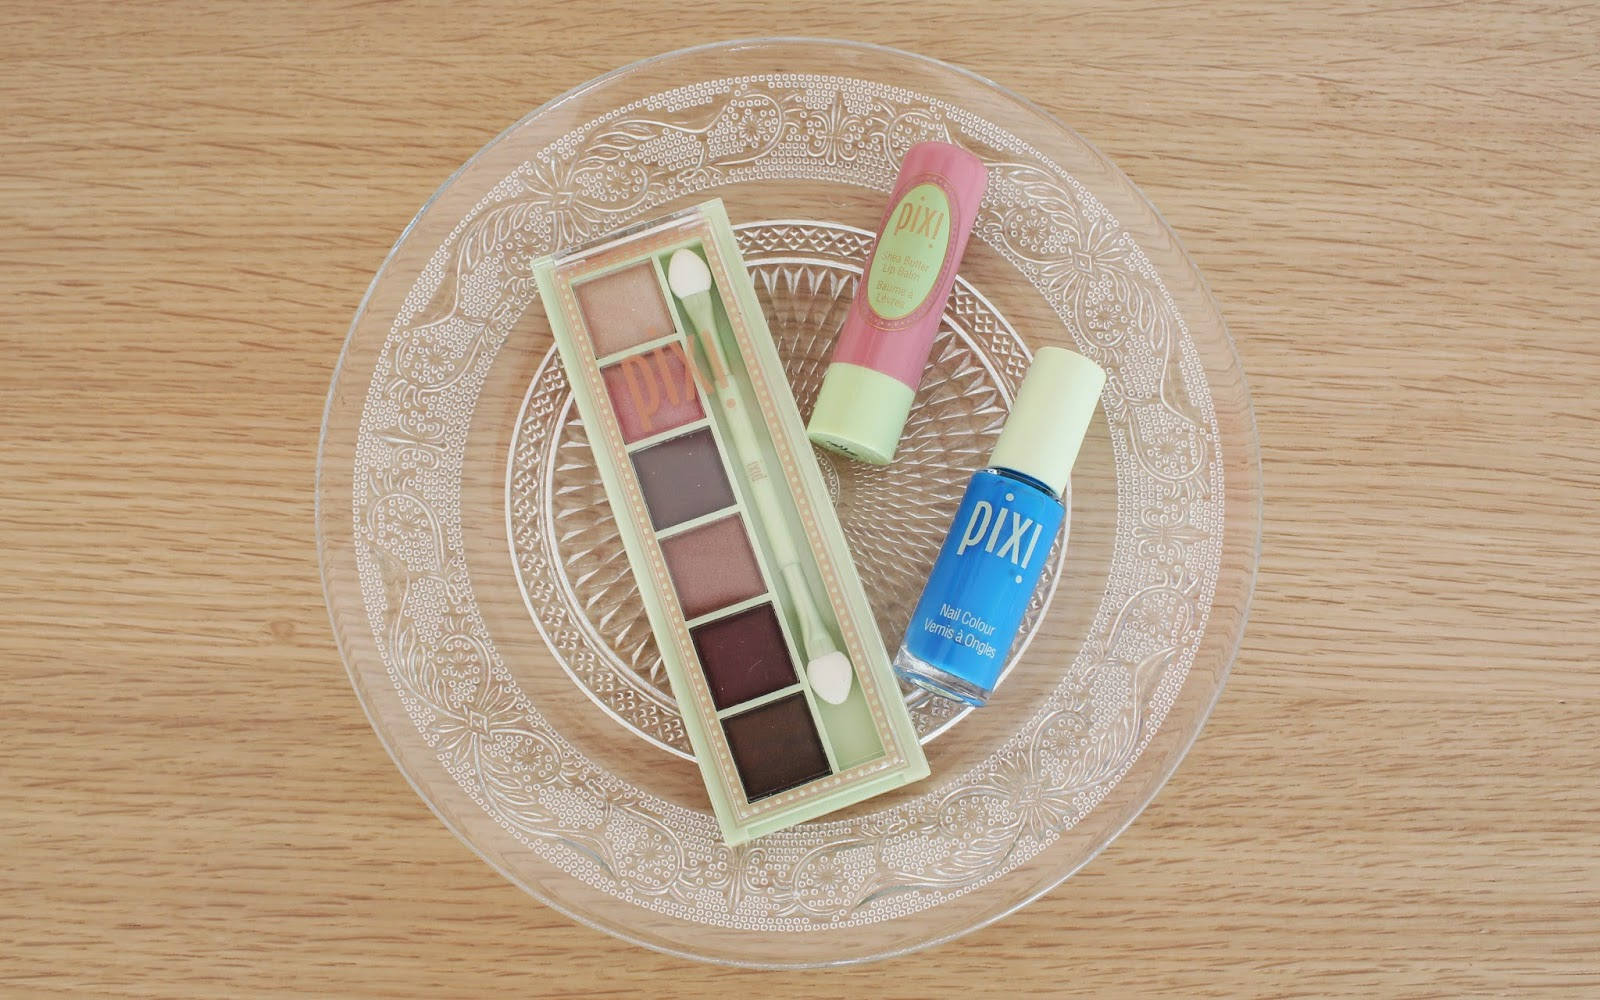 Pixi Make Up Review